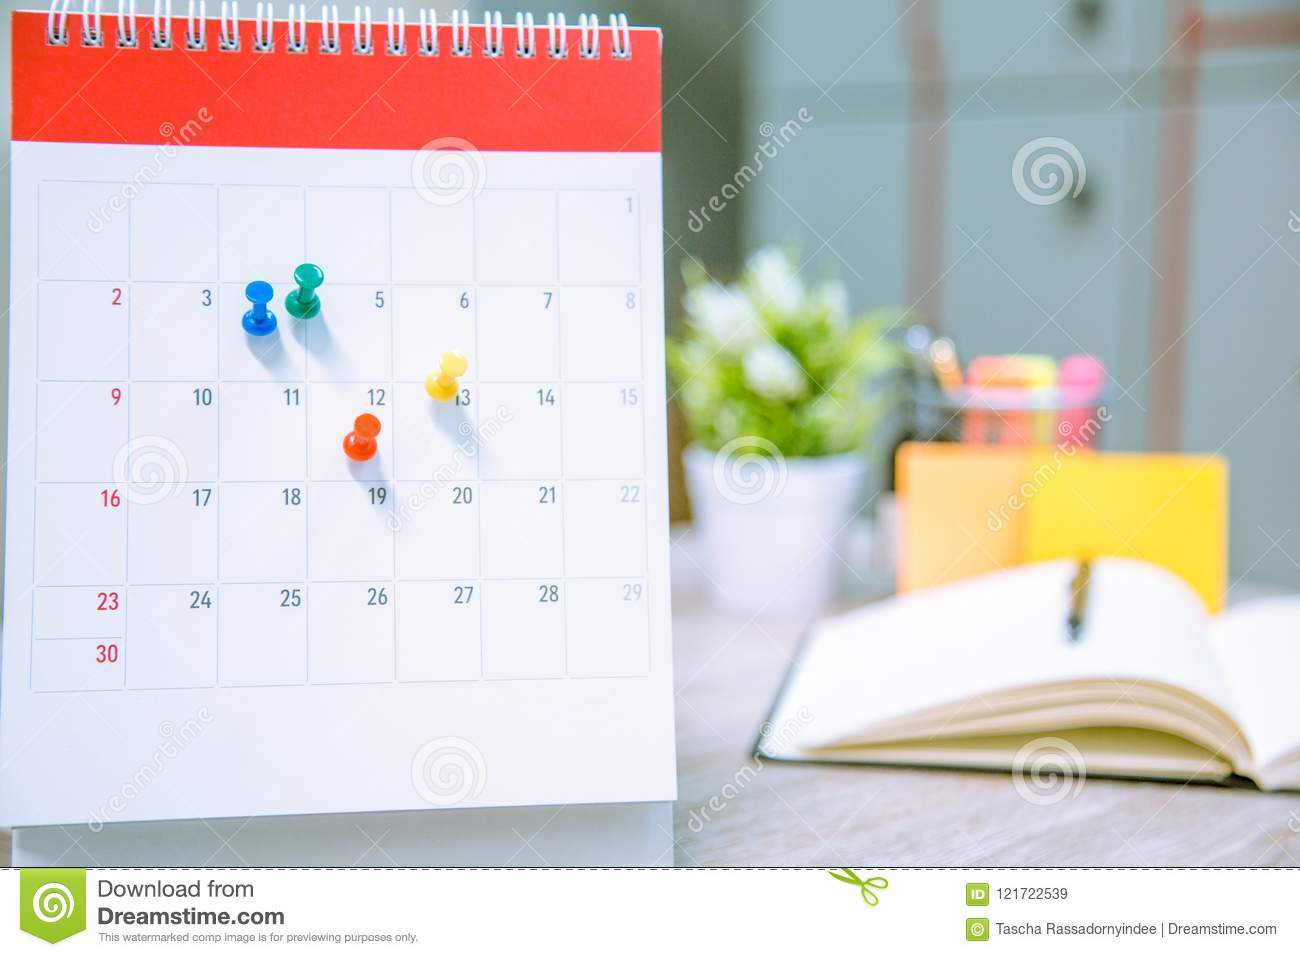 calendar event planner is busy calendar clock to set timetable